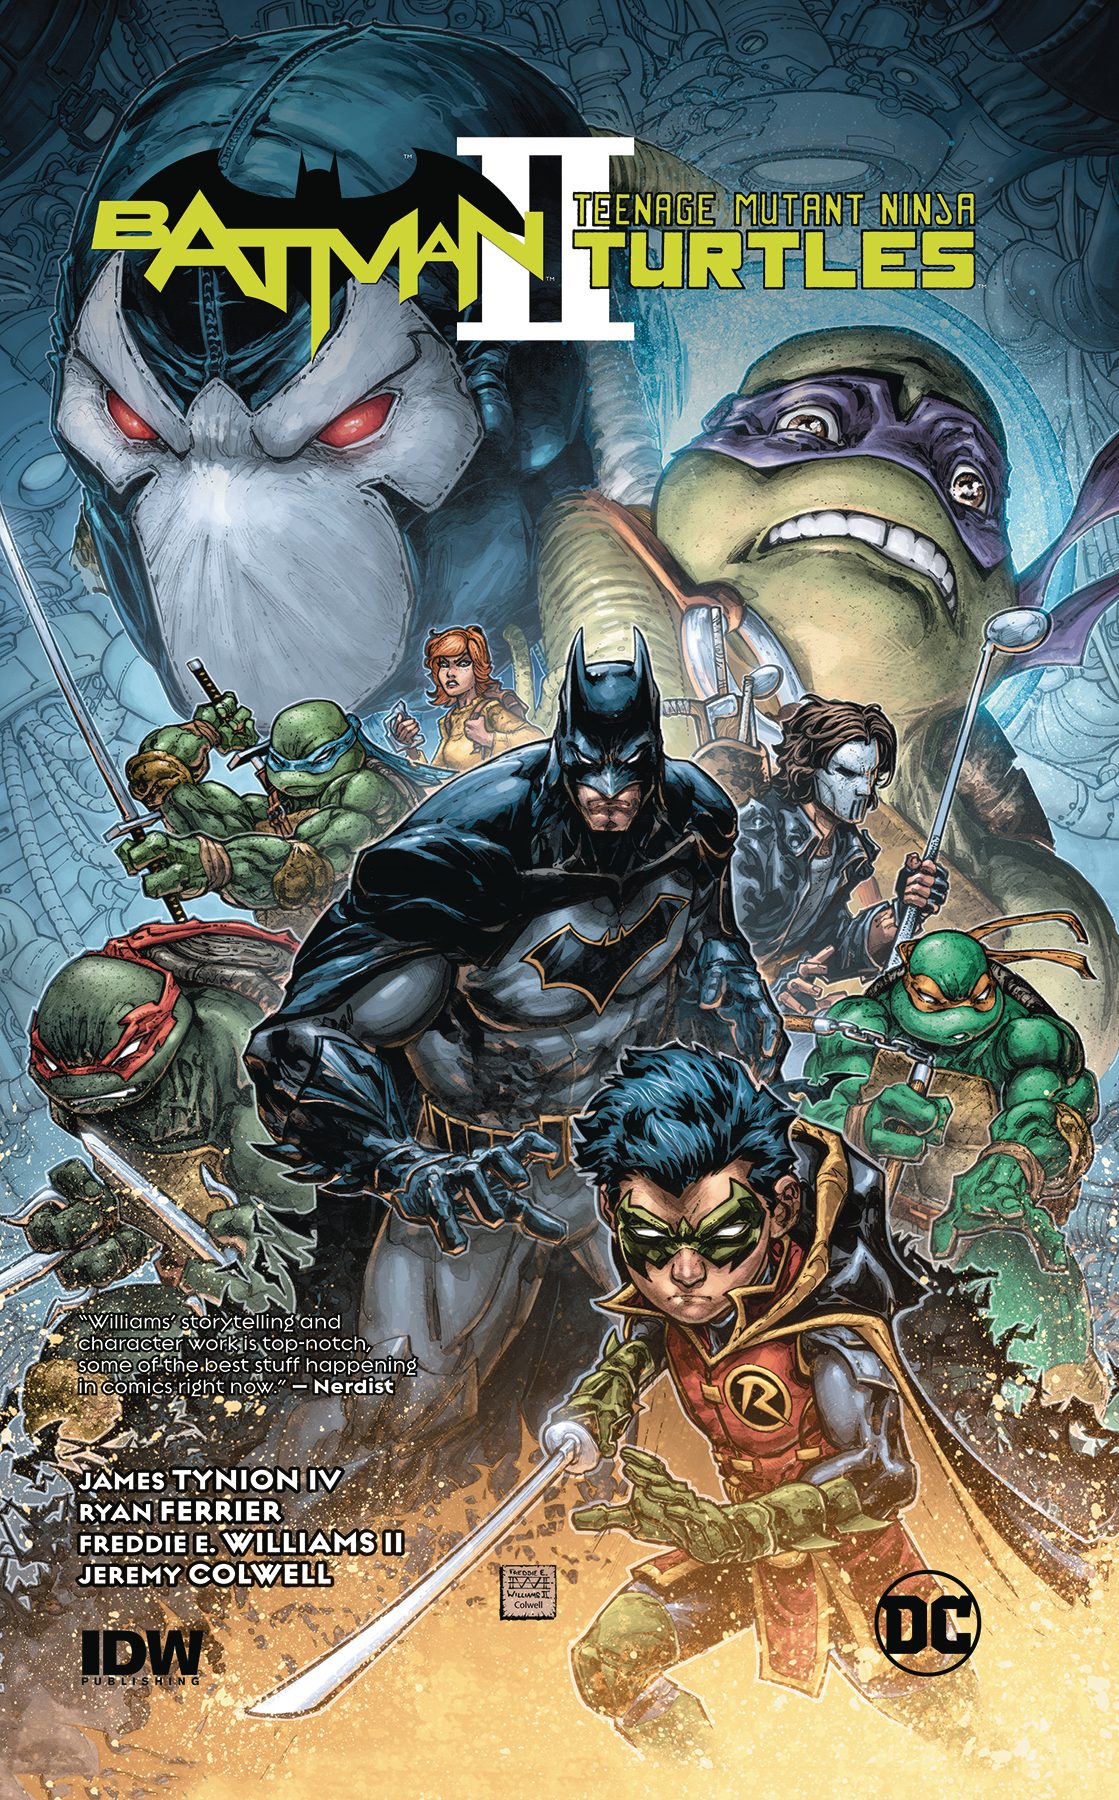 Batman Teenage Mutant Ninja Turtles II TP